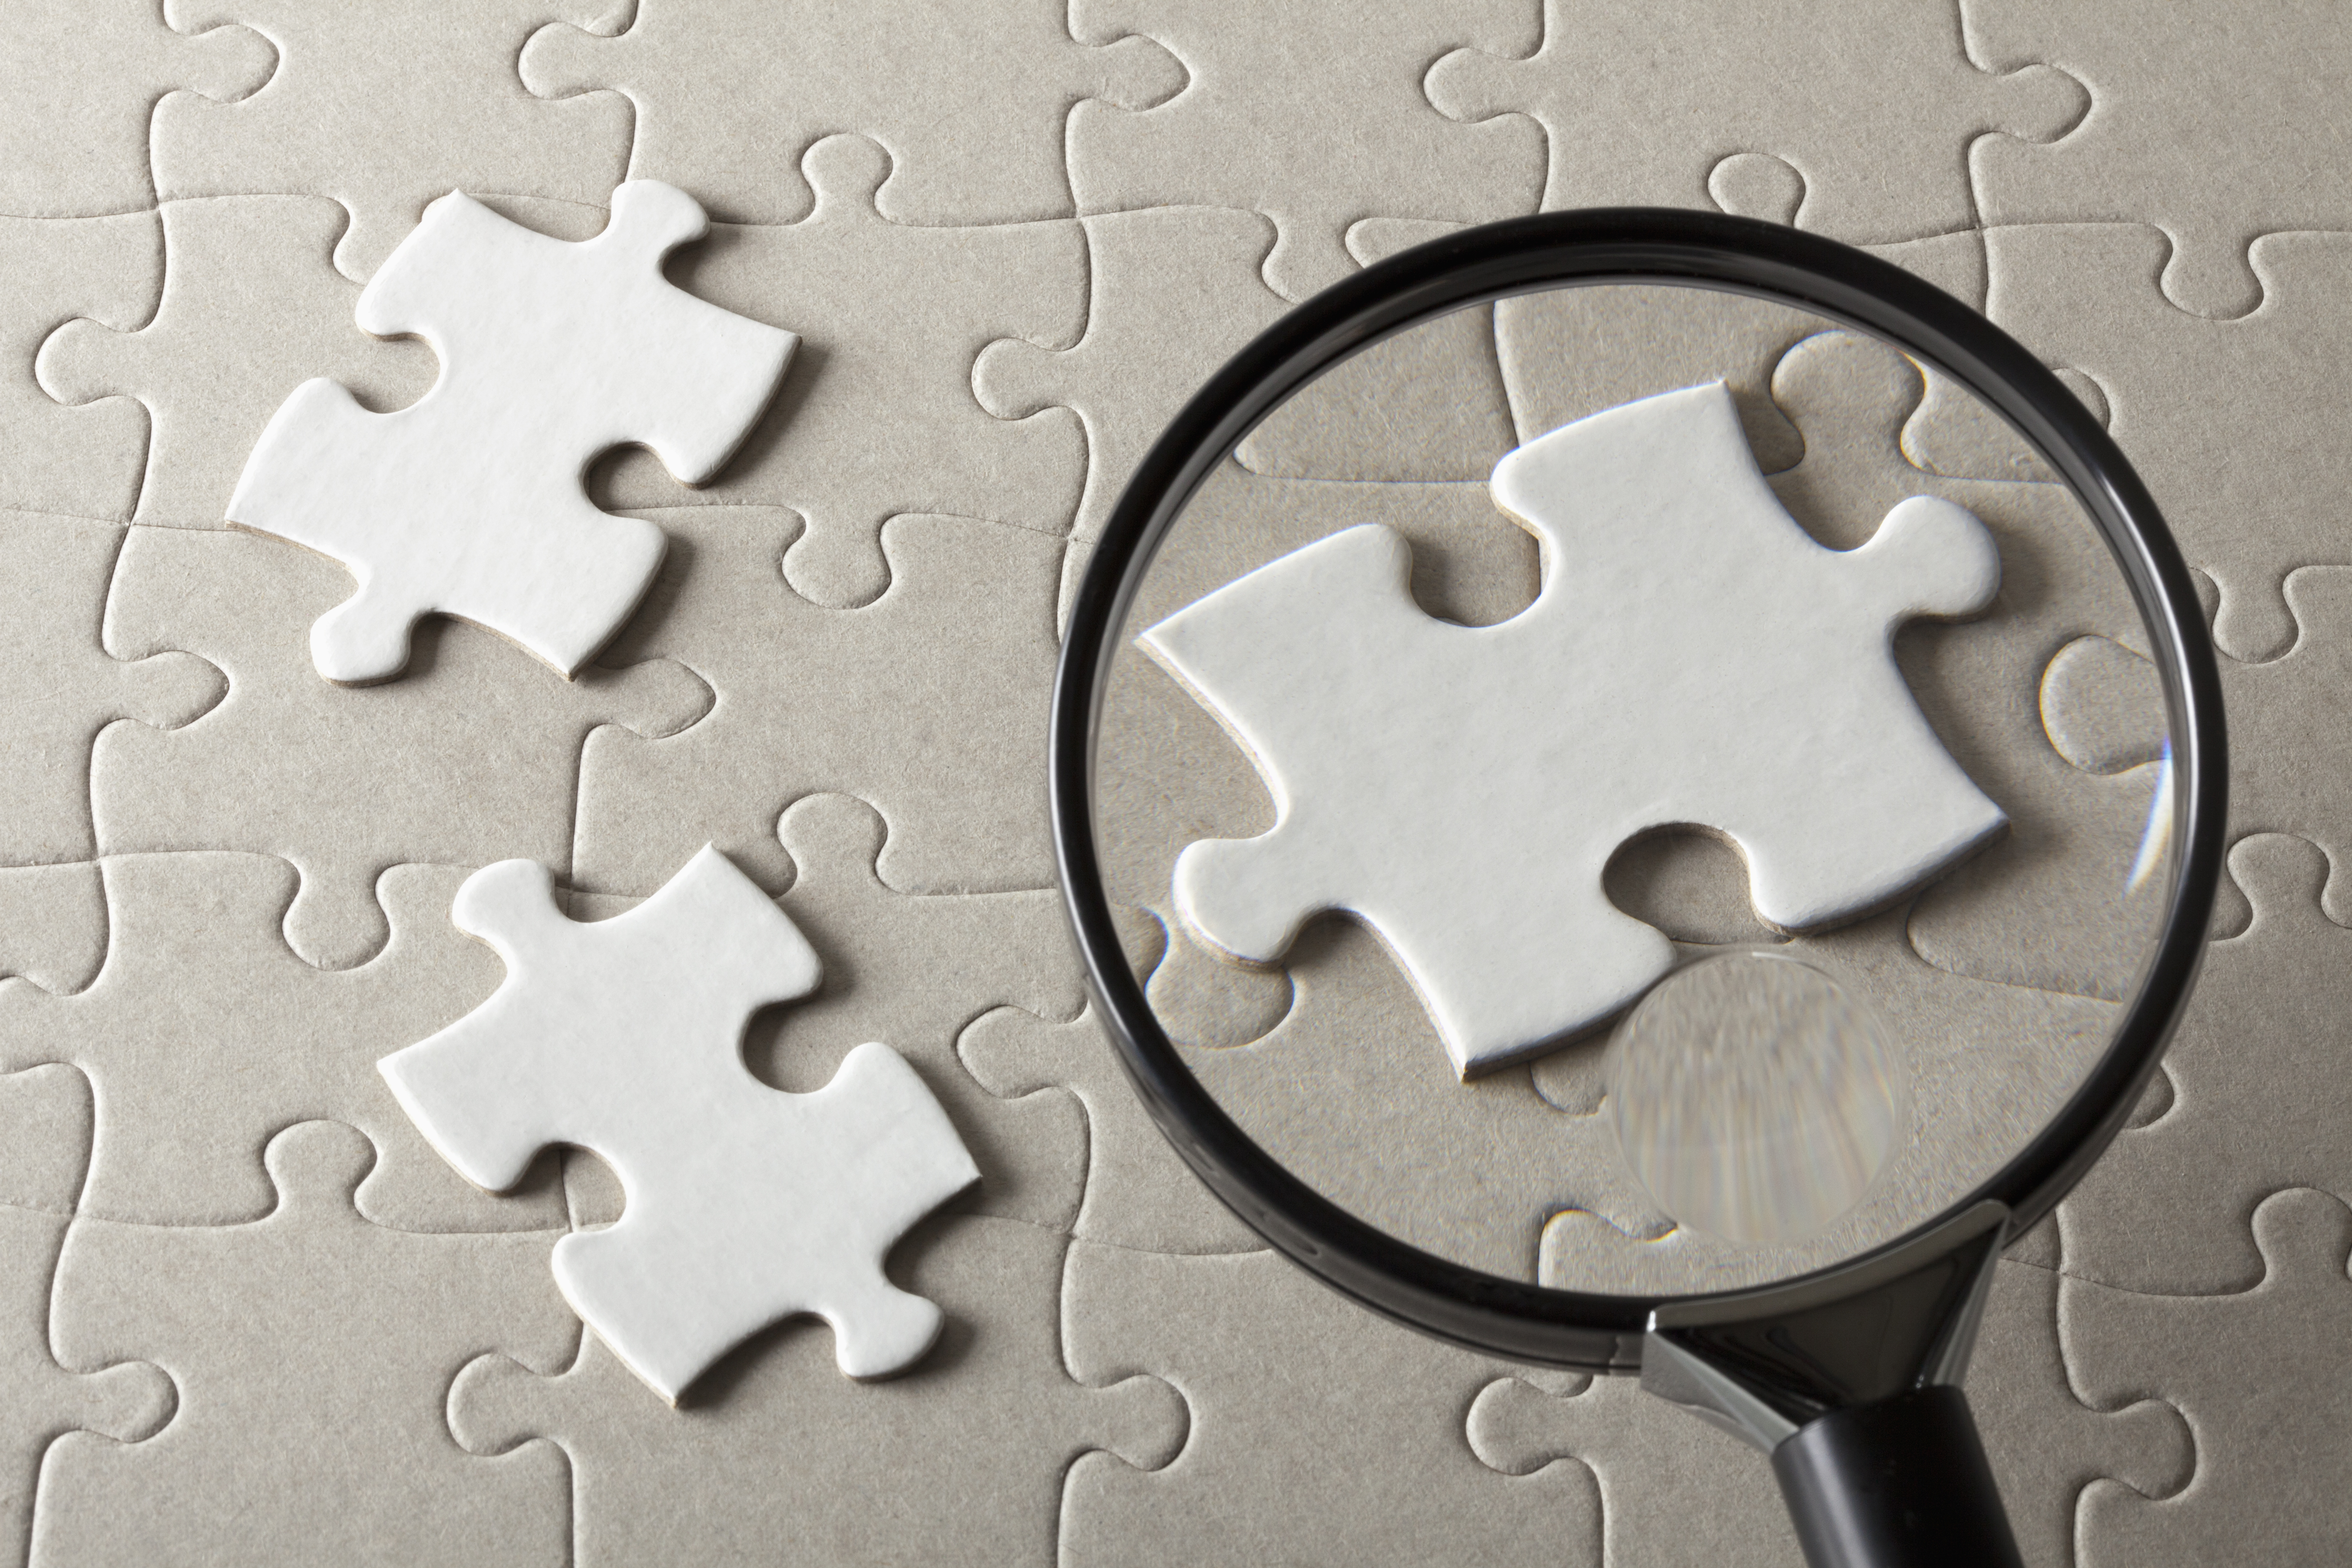 Puzzle pieces on a jigsaw puzzle being magnified by a magnifying glass